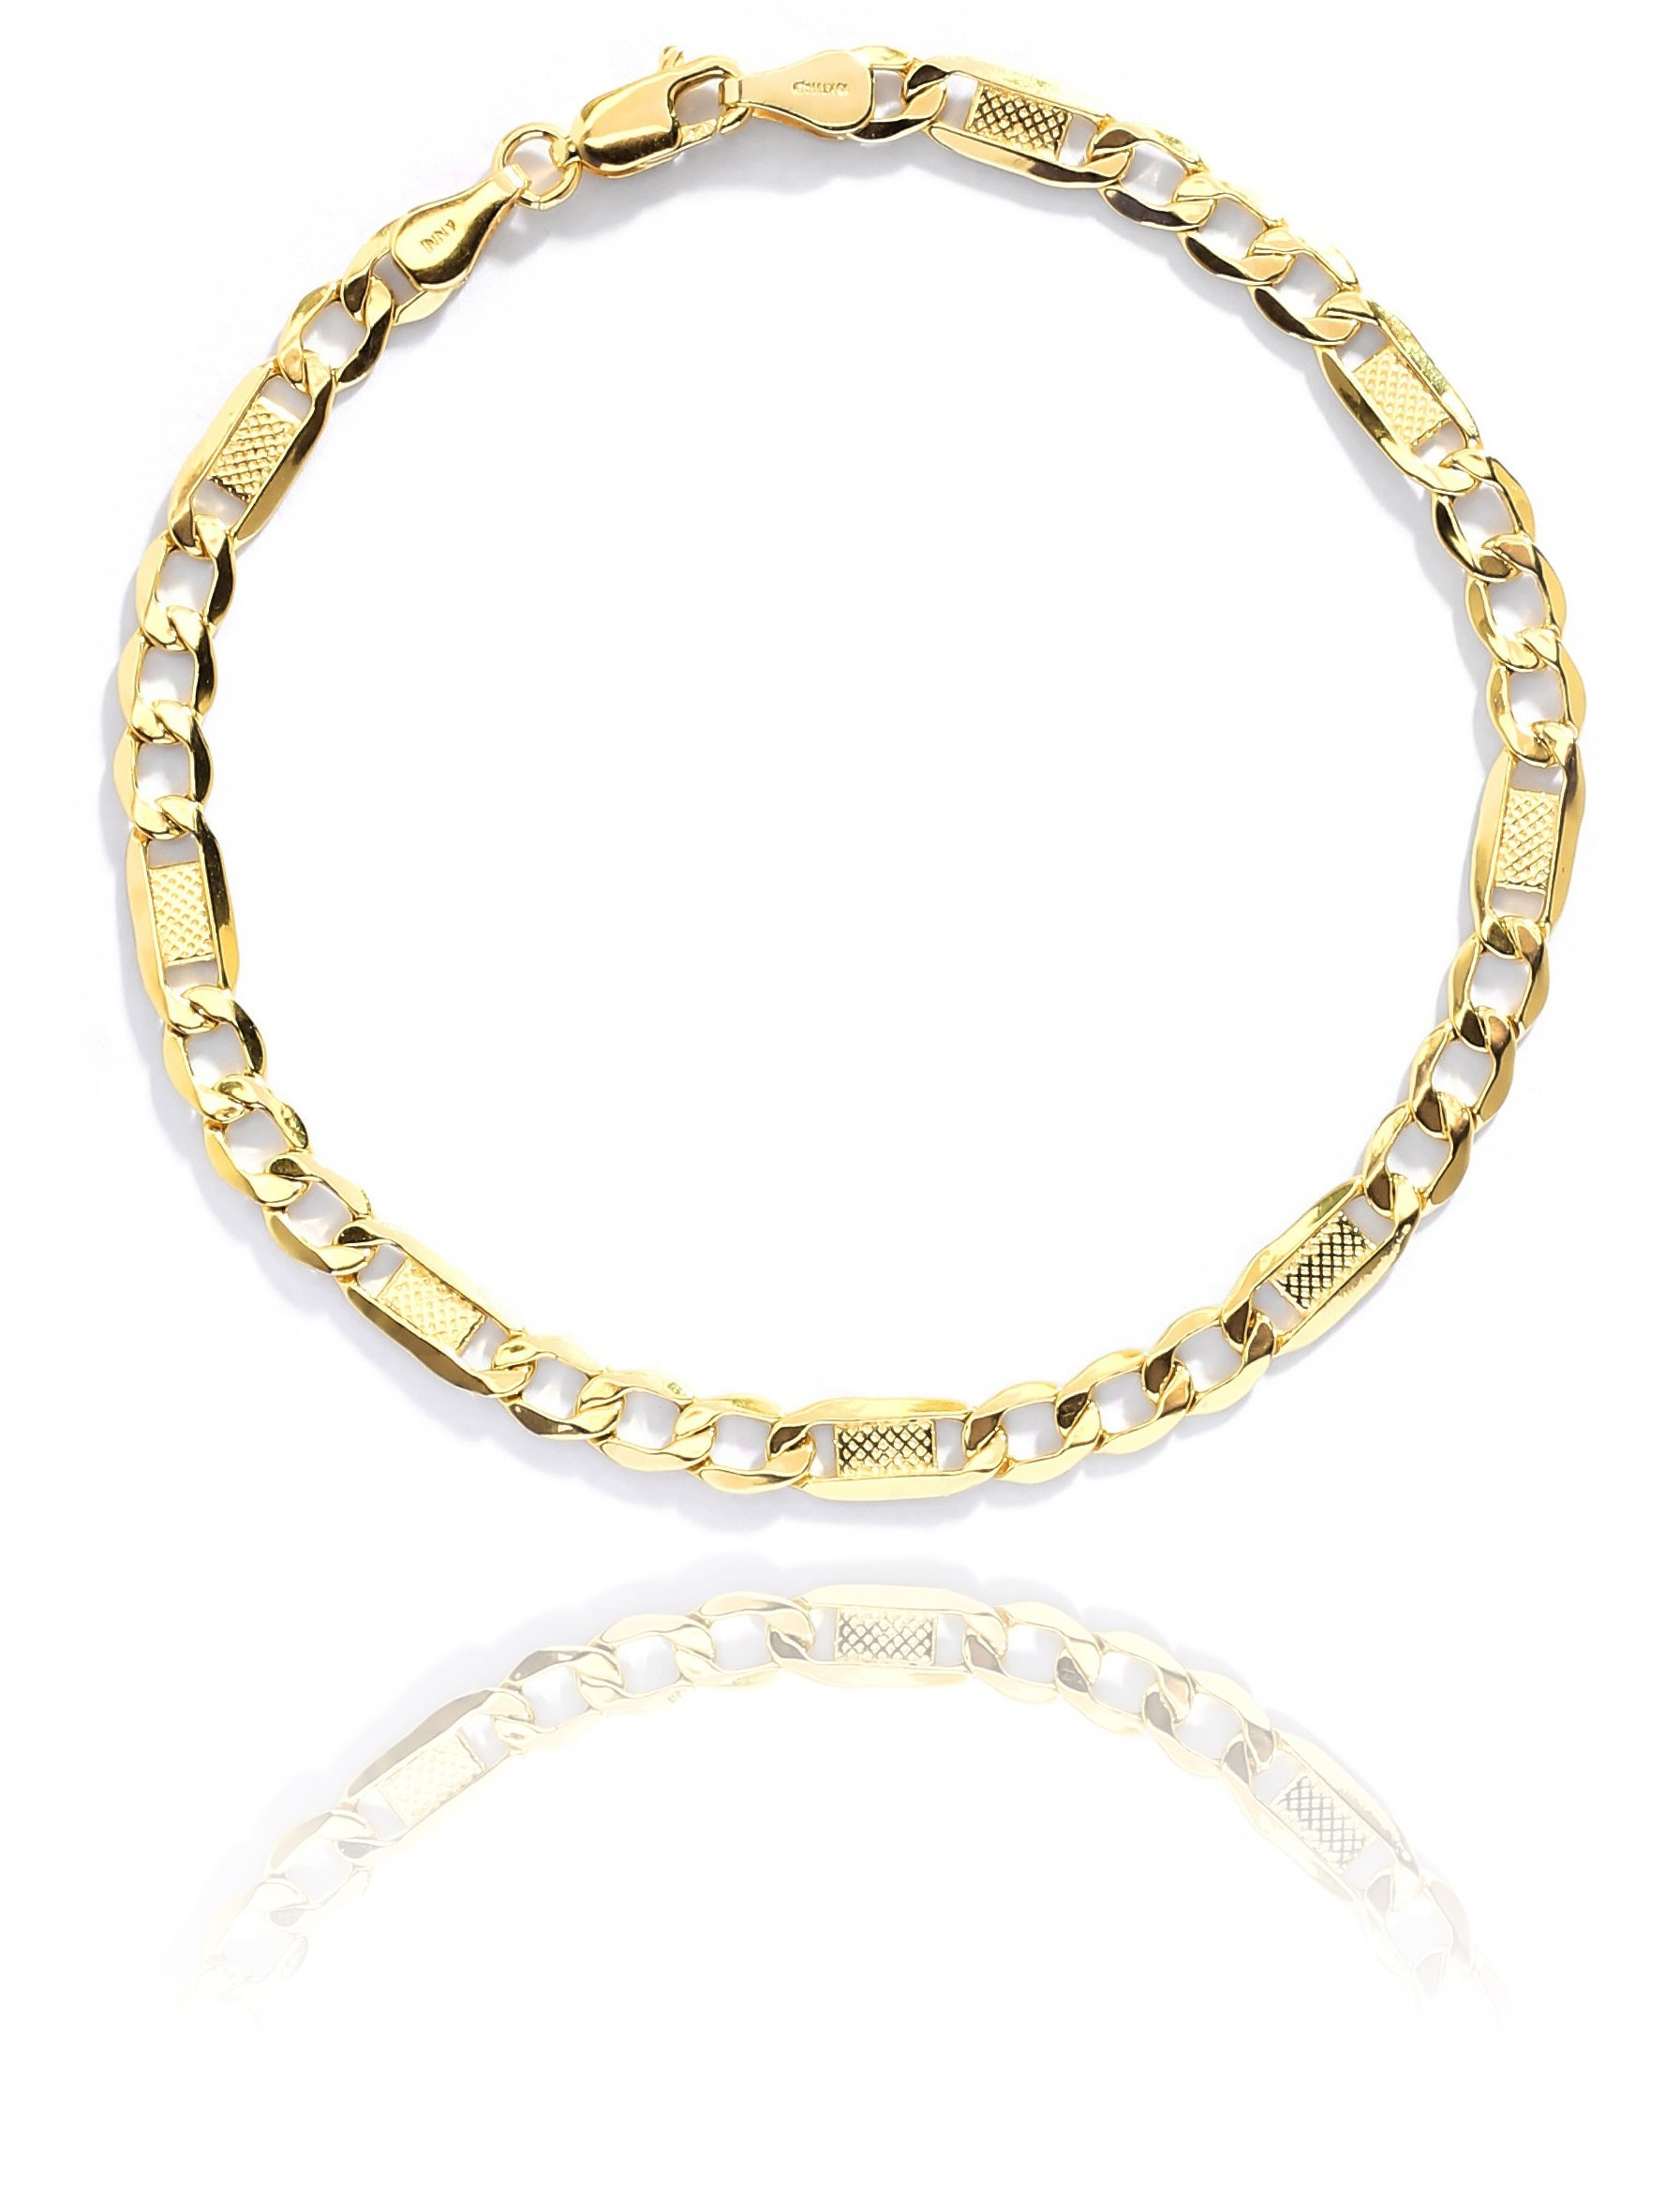 7 Inch 10k Yellow Gold Hollow Bar Figaro Chain Bracelet or Women and Men, 5mm